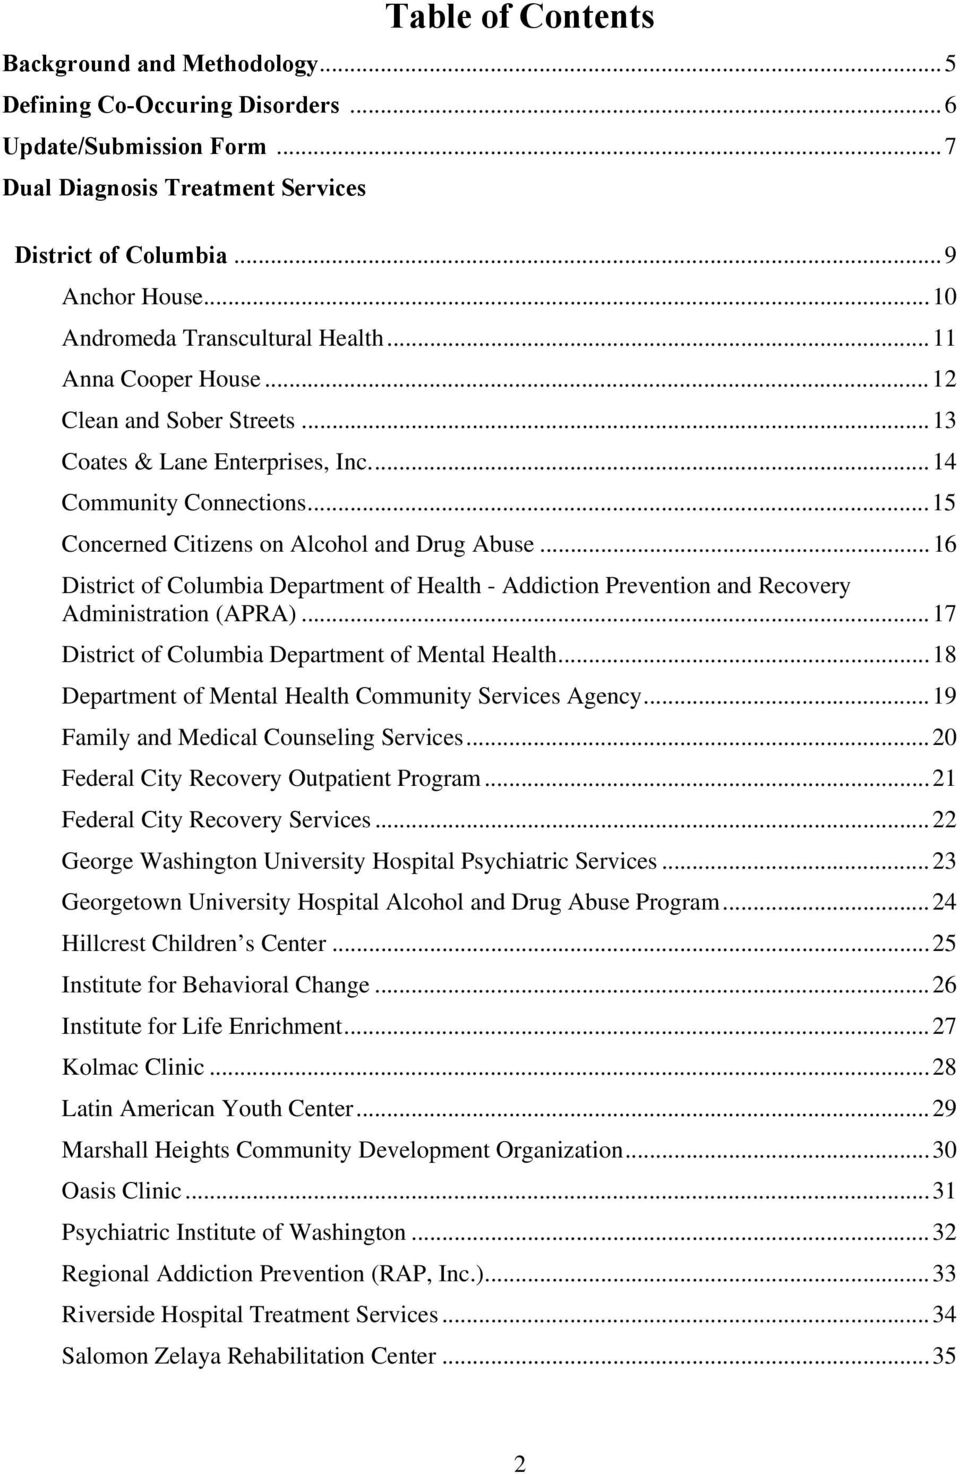 ..16 District of Columbia Department of Health - Addiction Prevention and Recovery Administration (APRA)...17 District of Columbia Department of Mental Health.